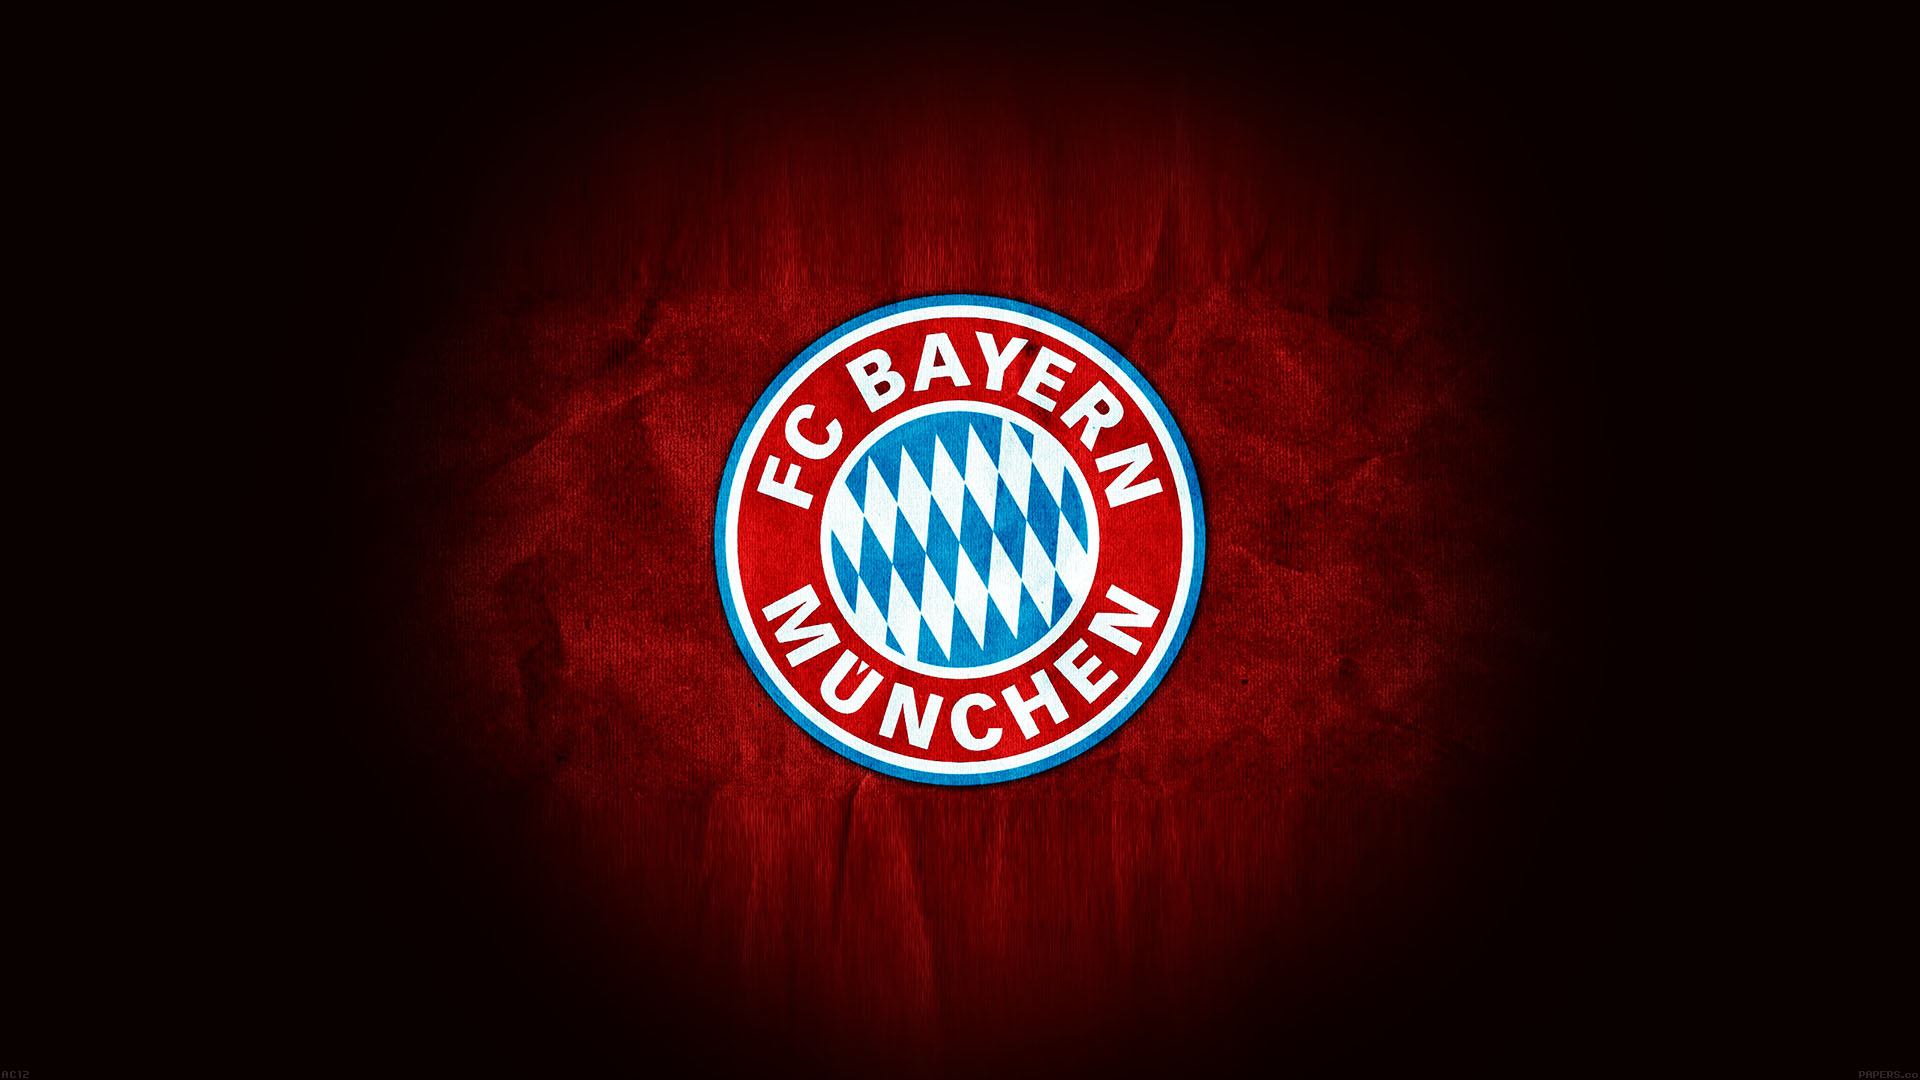 Manchester United Iphone Wallpaper Hd Ac12 Wallpaper Bayern Munchen Soccer Team Football Papers Co